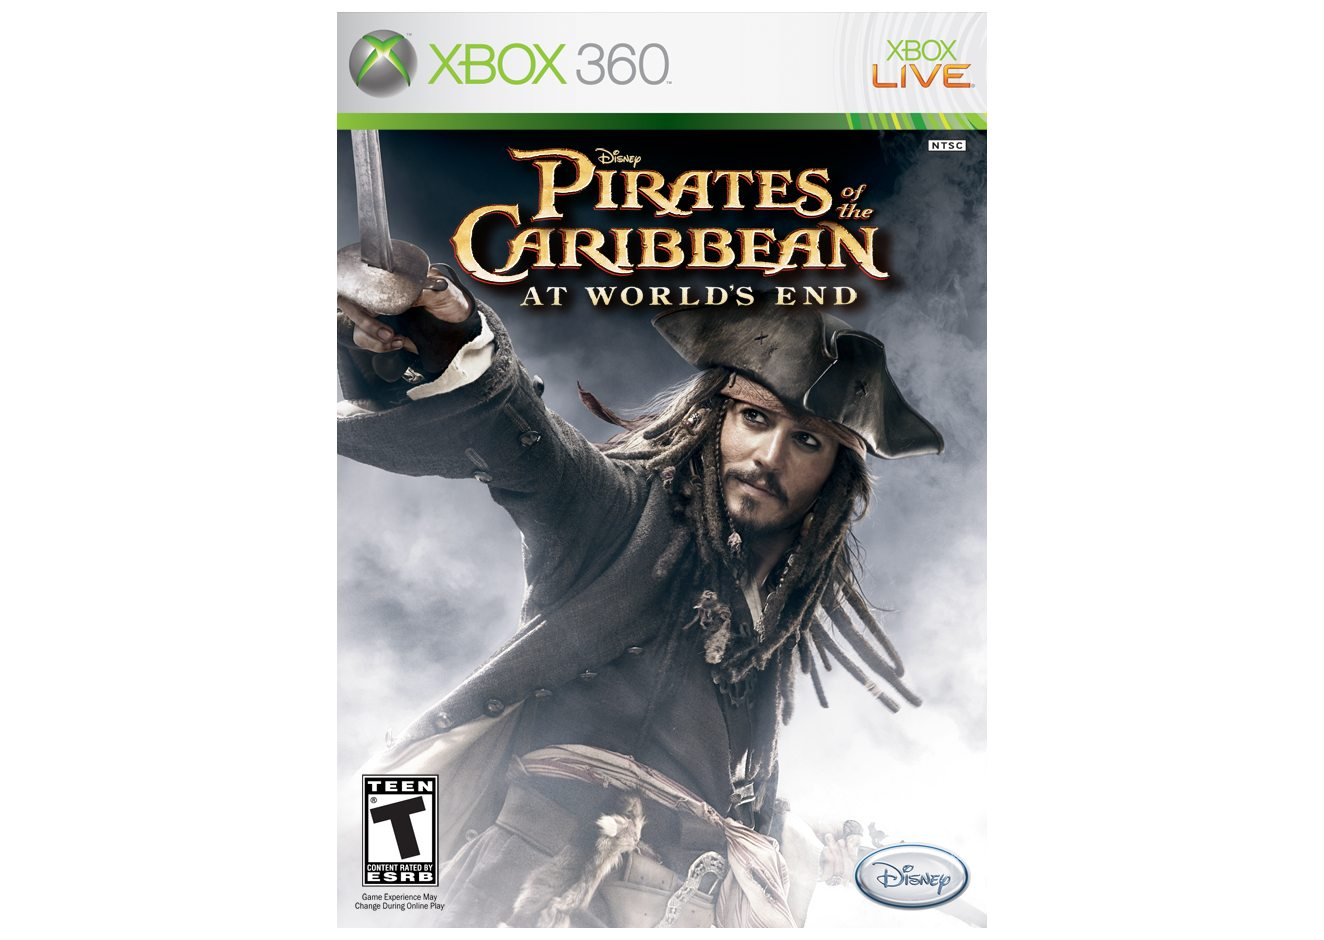 Xbox 360 Pirates of the Caribbean: At World's End (Пираты Карибского моря. На краю света) Xbox 360